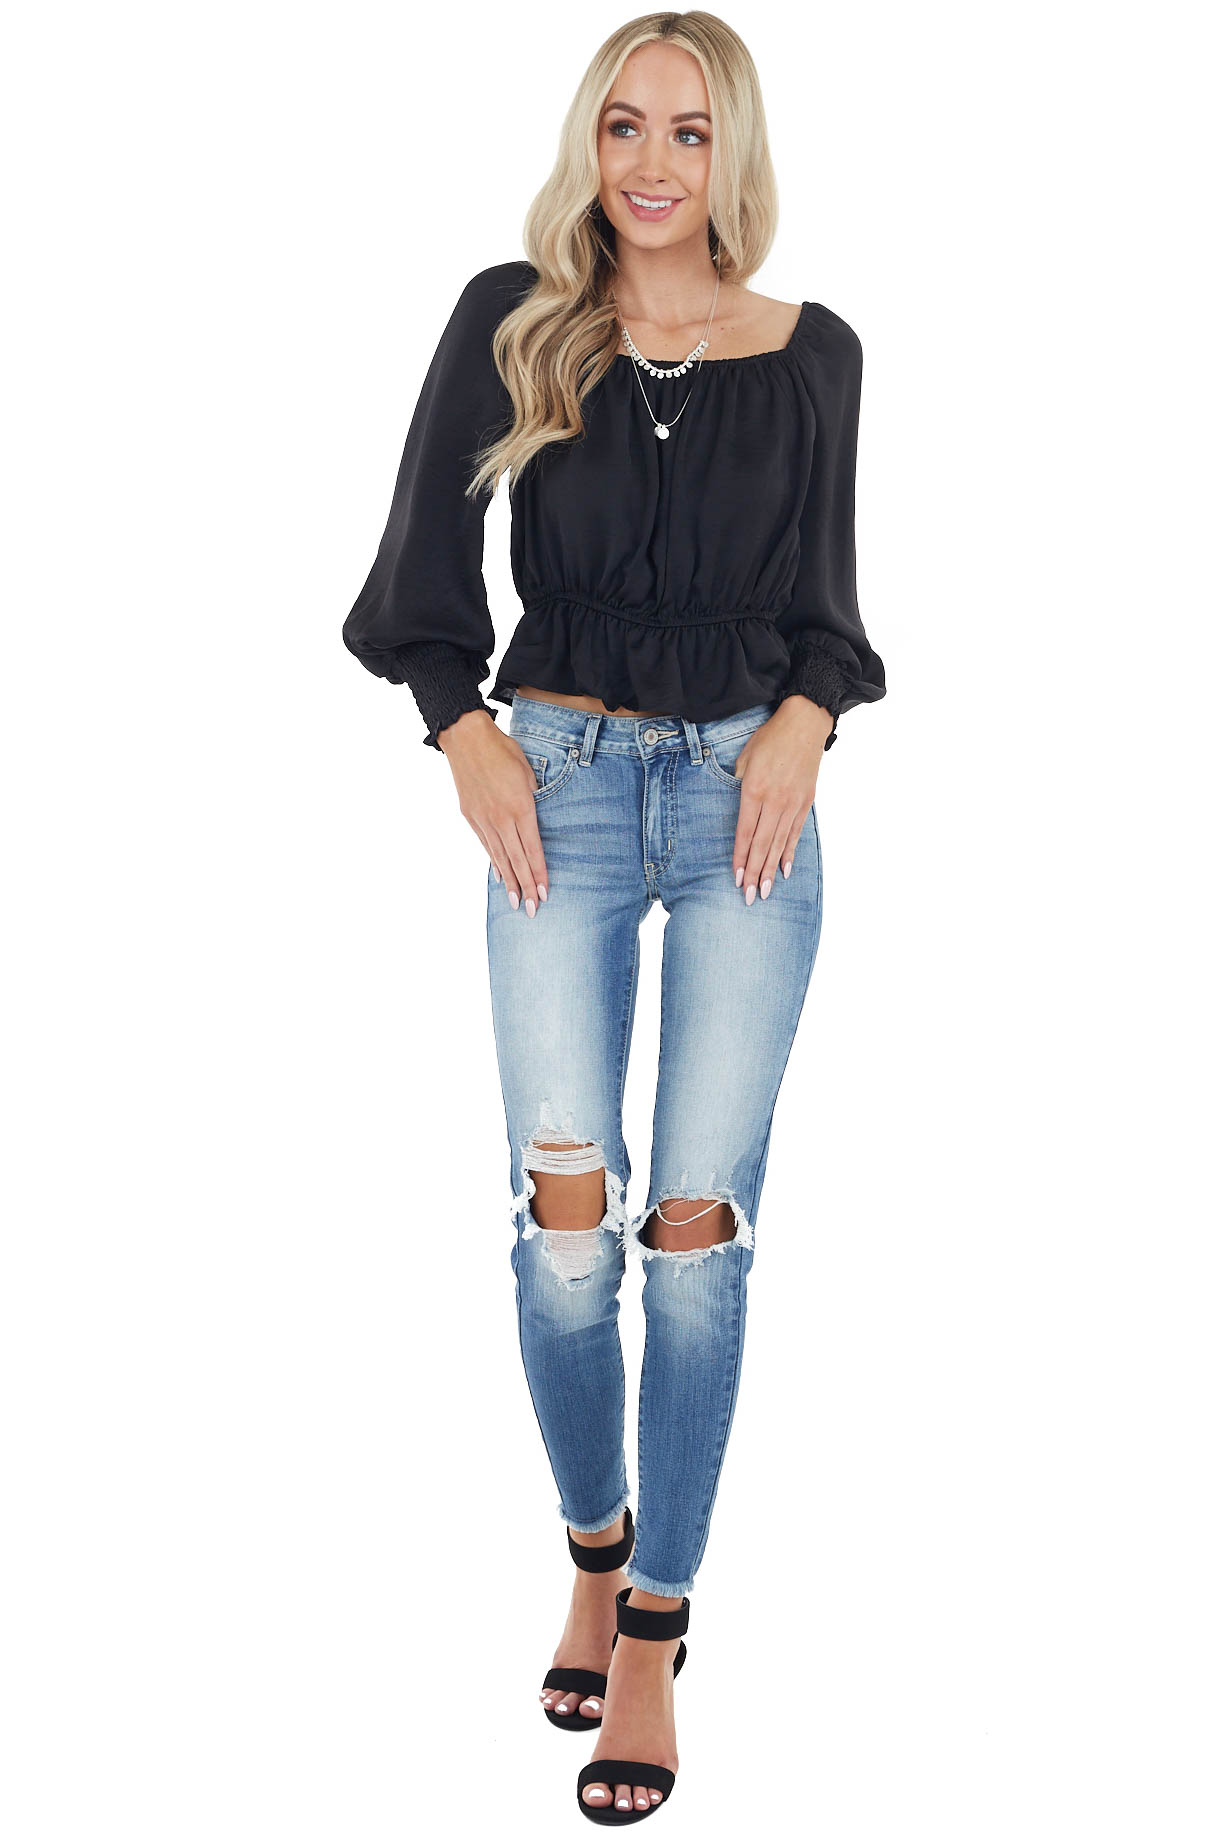 Black Peplum Crop Top with Bubble Sleeves and Smocked Cuffs